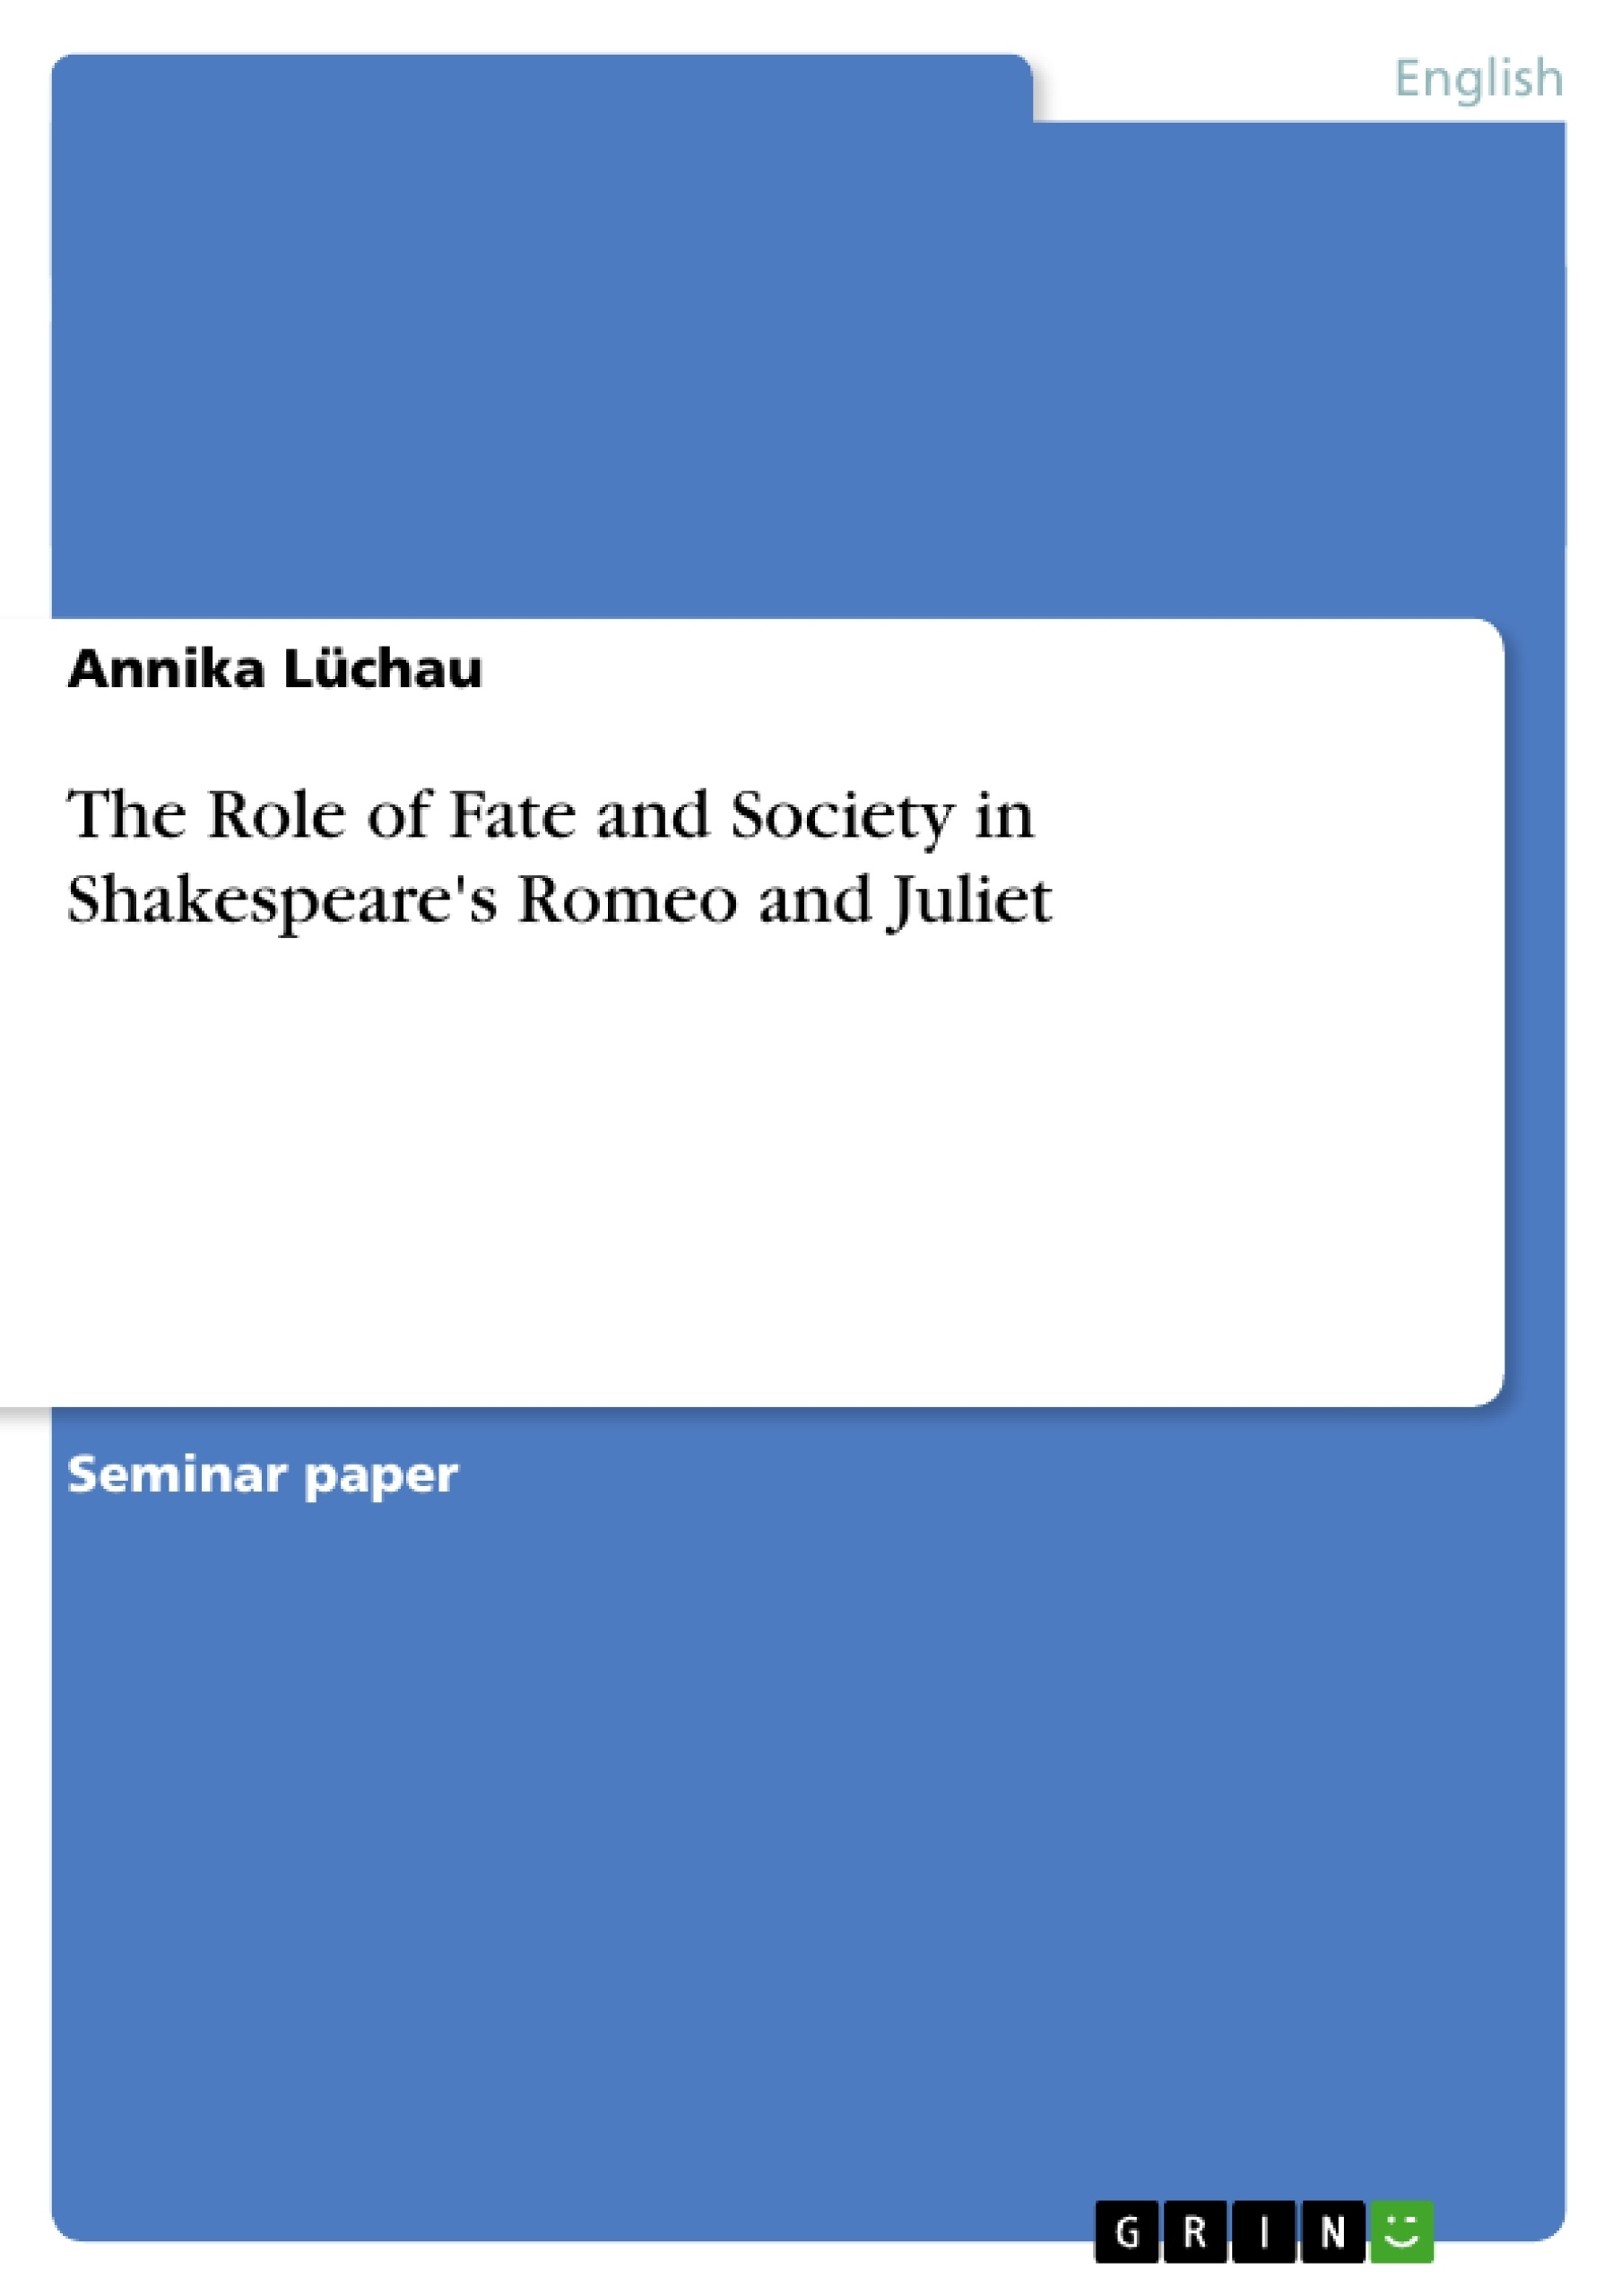 romeo and juliet essays on fate